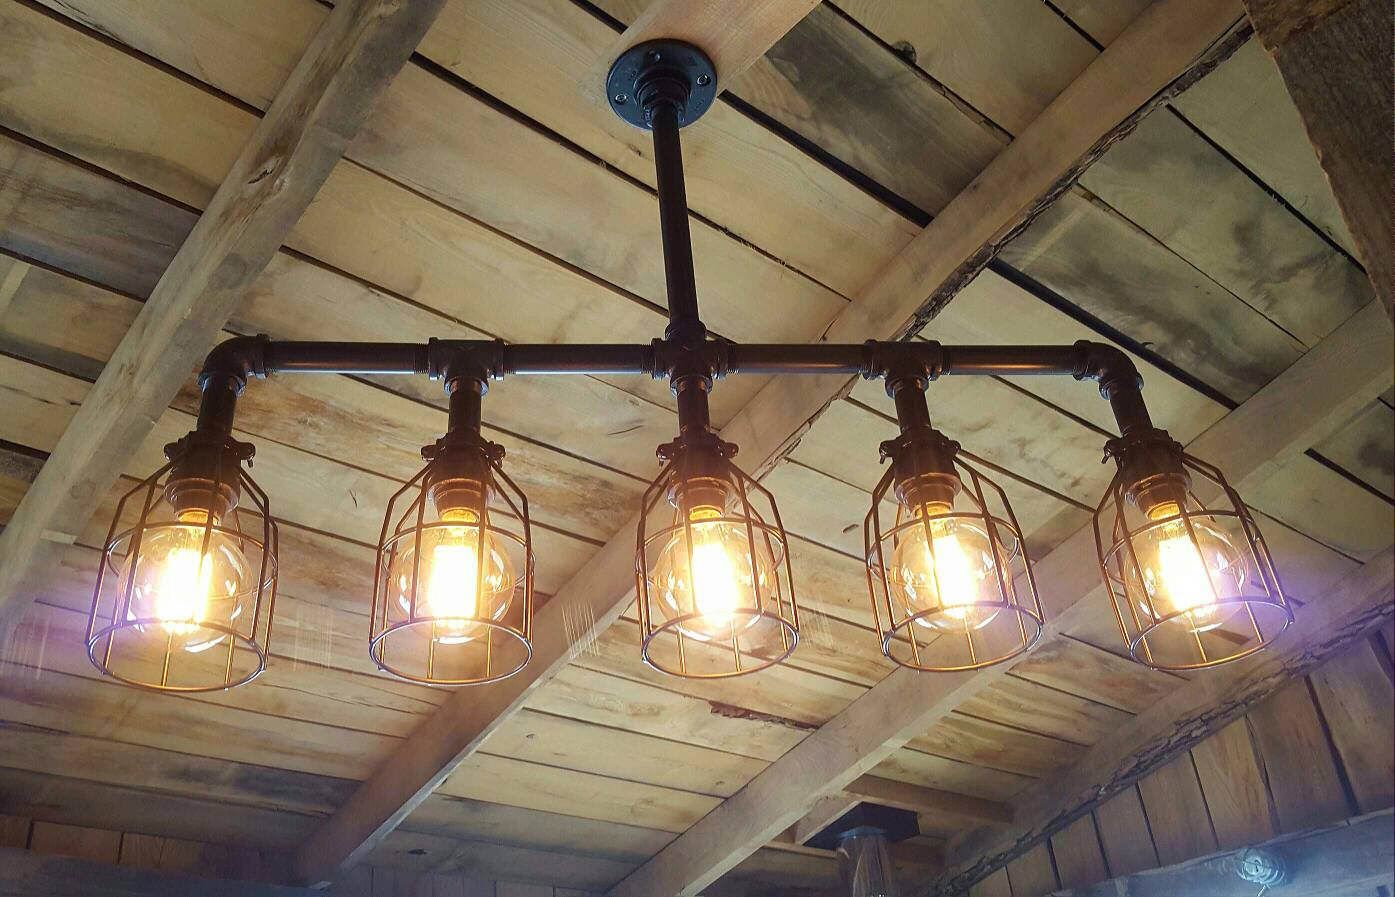 Rustic Industrial Lighting Chandelier - chandeliers